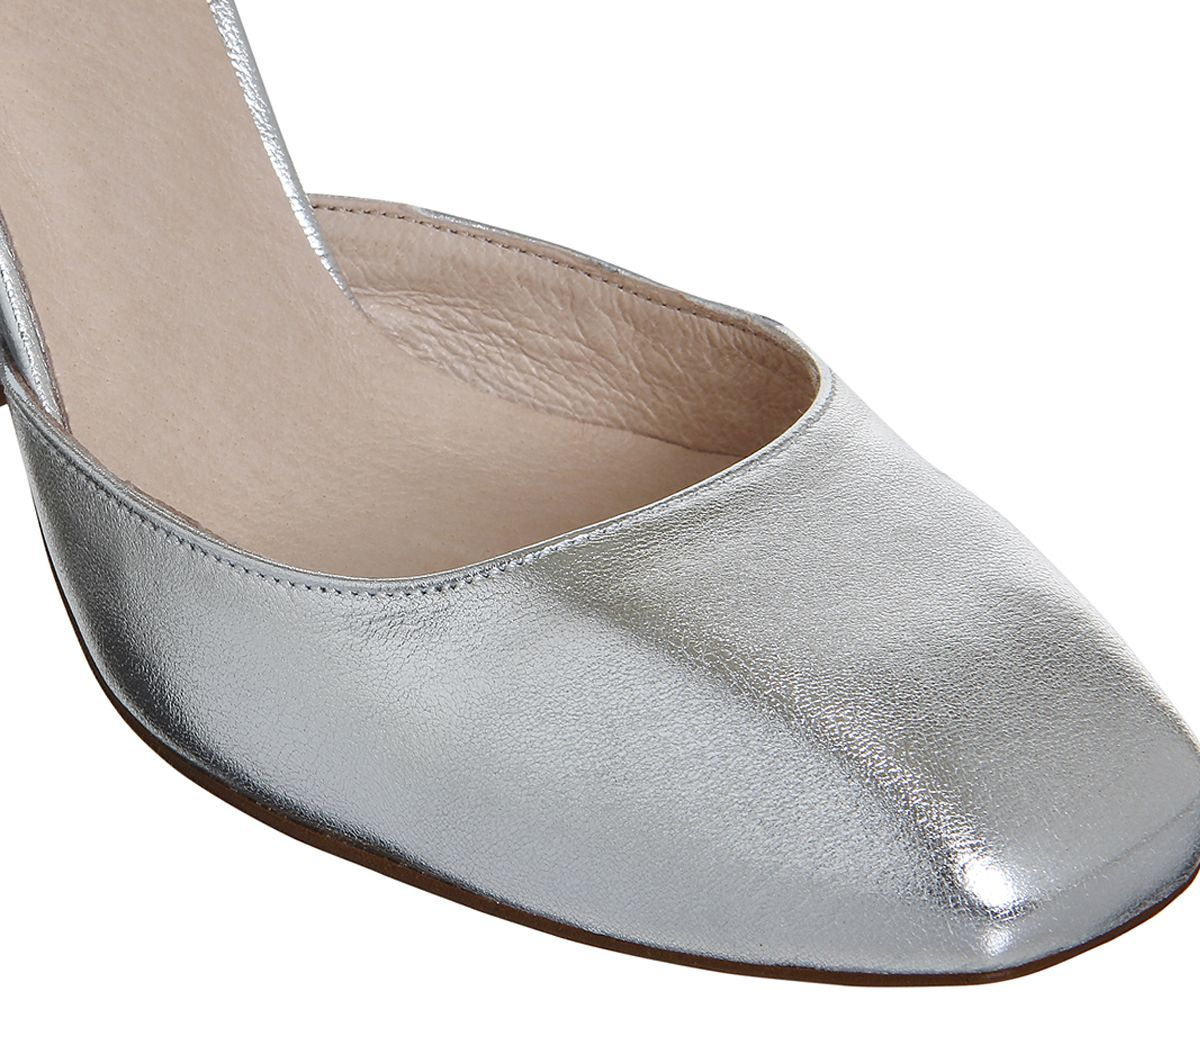 abd7e3a10b61 Office Nibbles Mary Jane Block Heels Silver Leather - High Heels